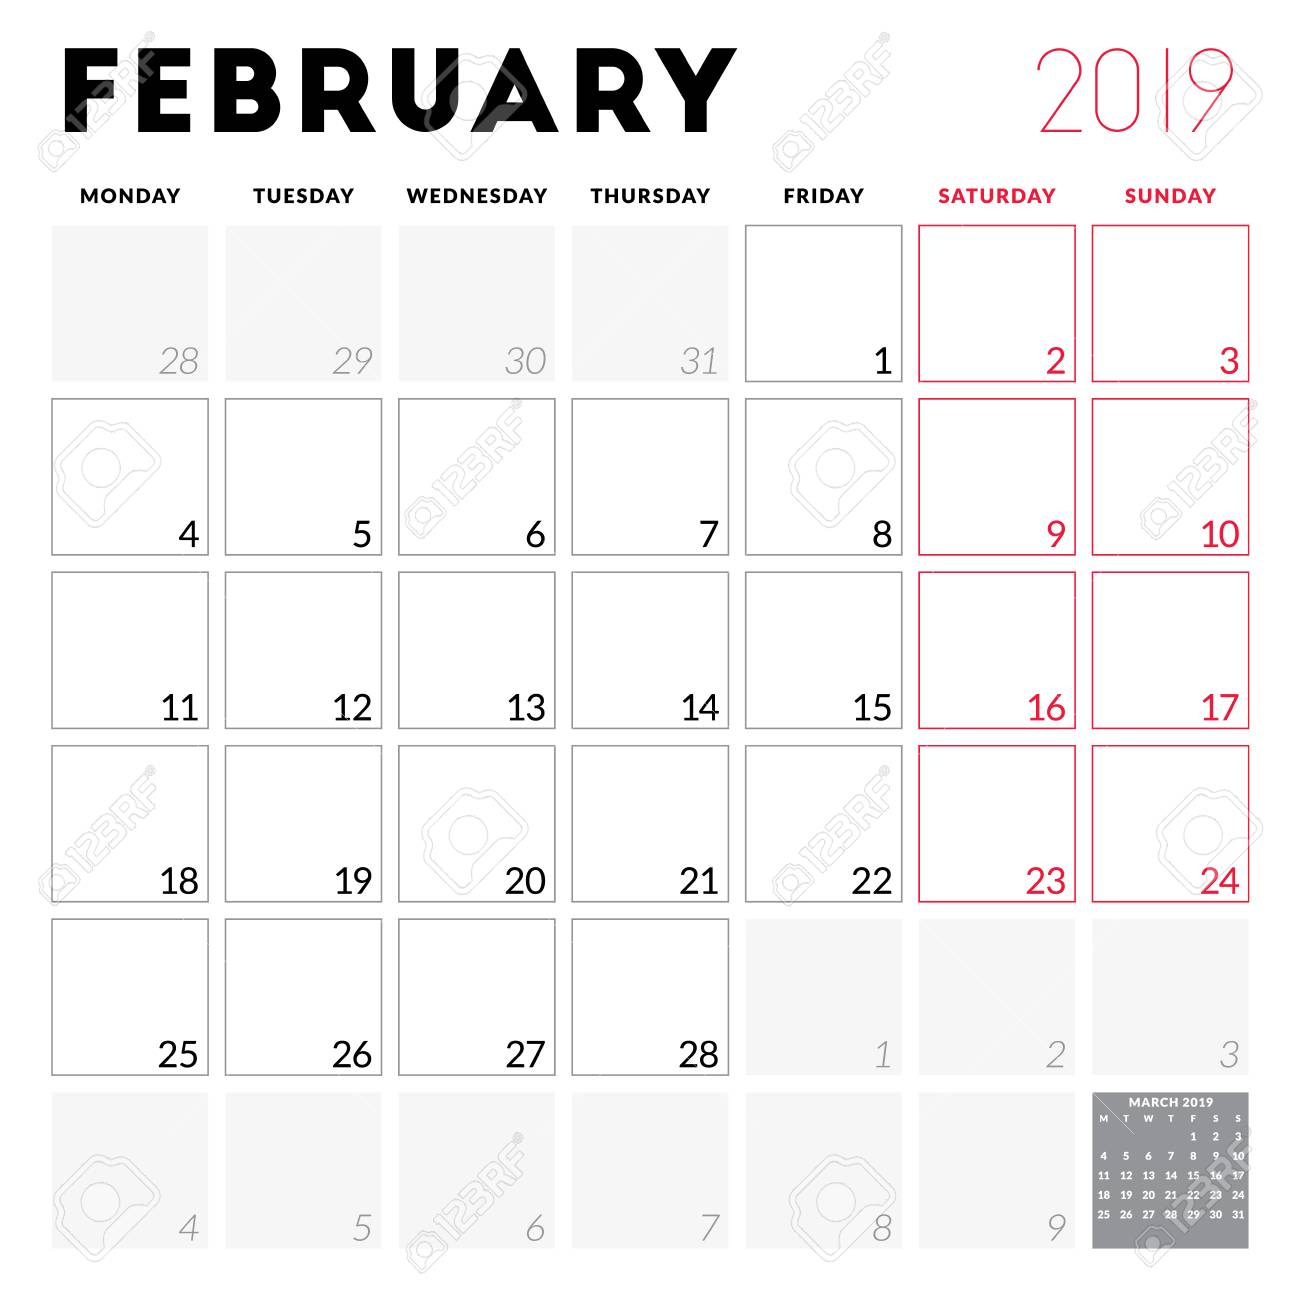 Calendar Planner For February 2019. Week Starts On Monday. Printable..